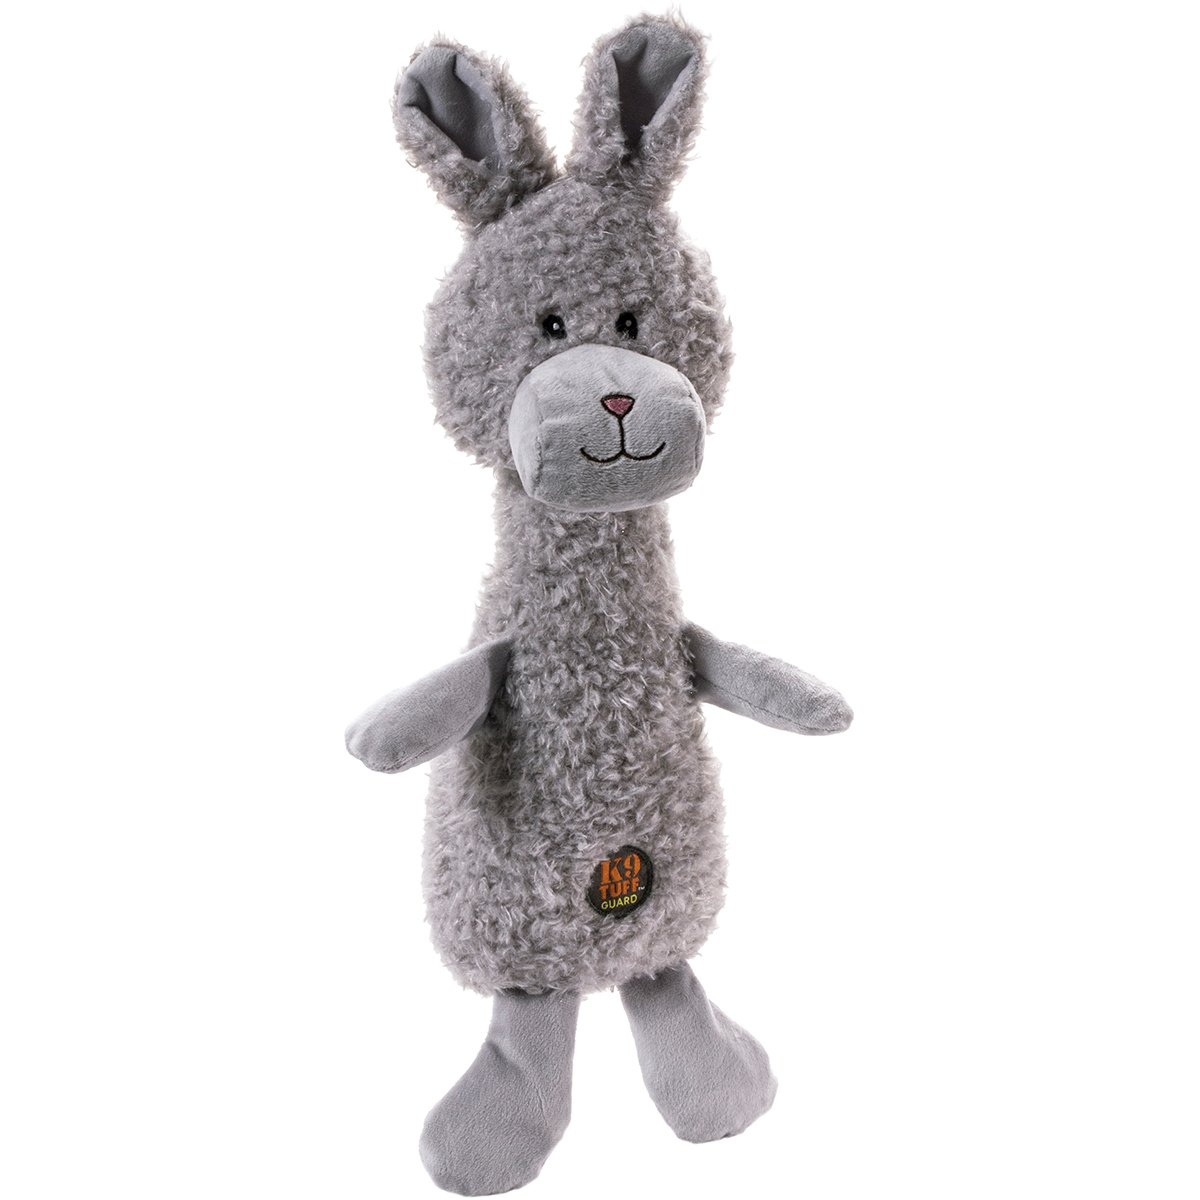 Charming Pet Scruffles Bunny Dog Toy Image